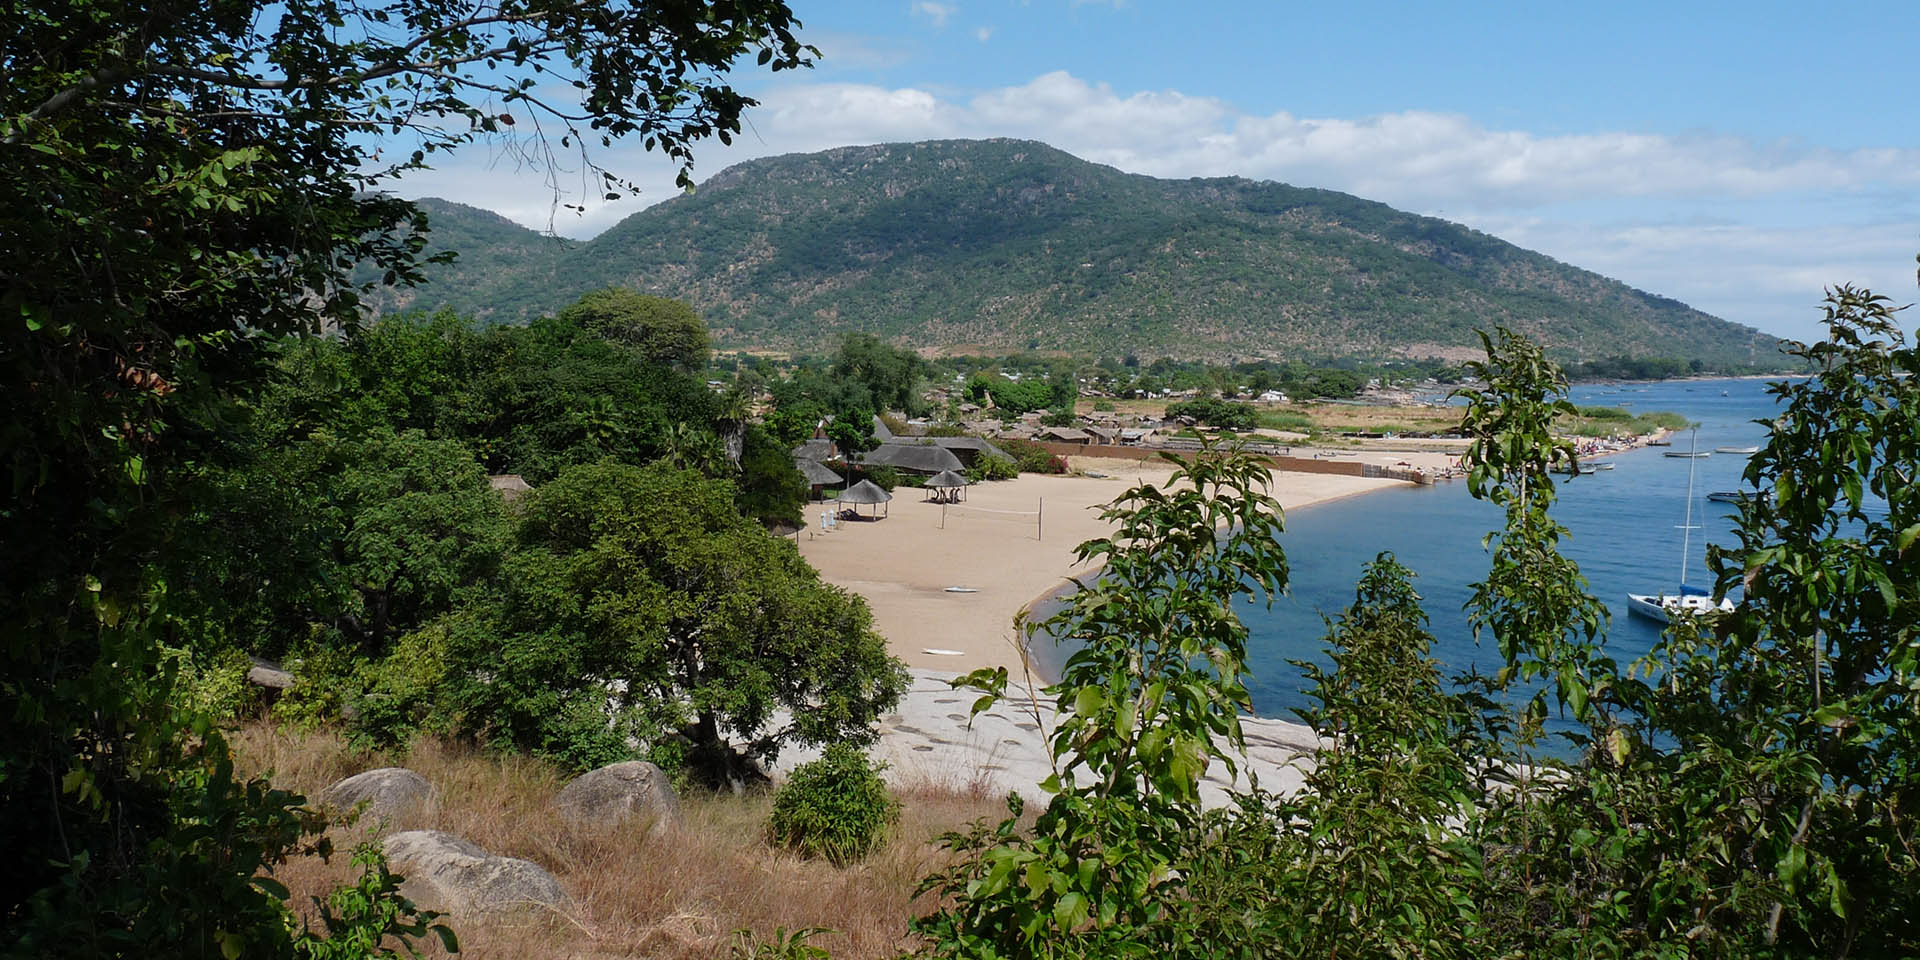 cape maclear malawi-points-of-interest-tours-malawian-style-malawi-adventures-experiences-specialist-tour-operator-mountain